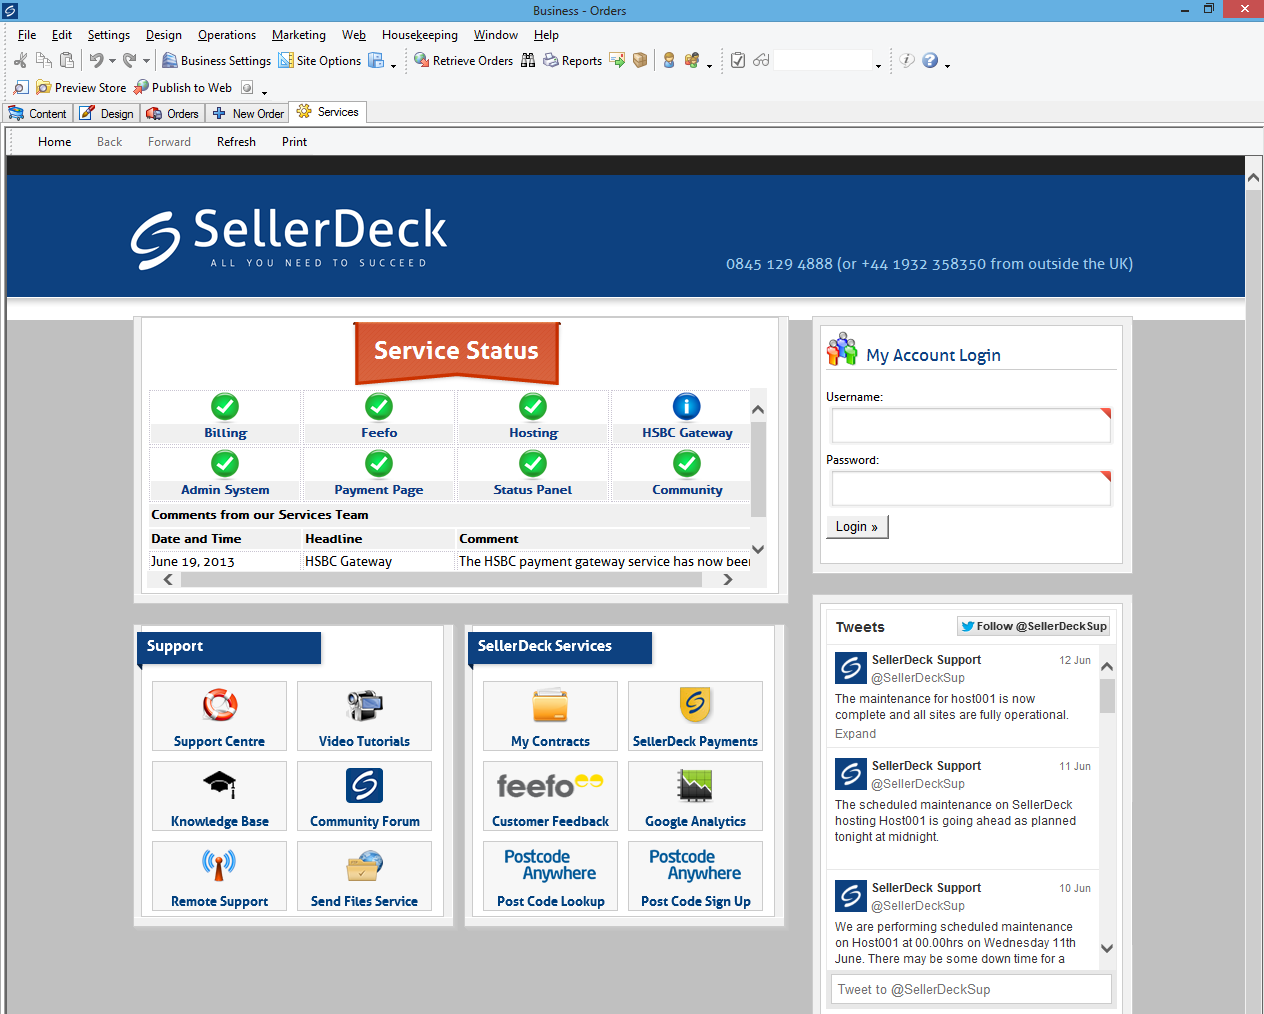 SellerDeck V12.0.2 out now!